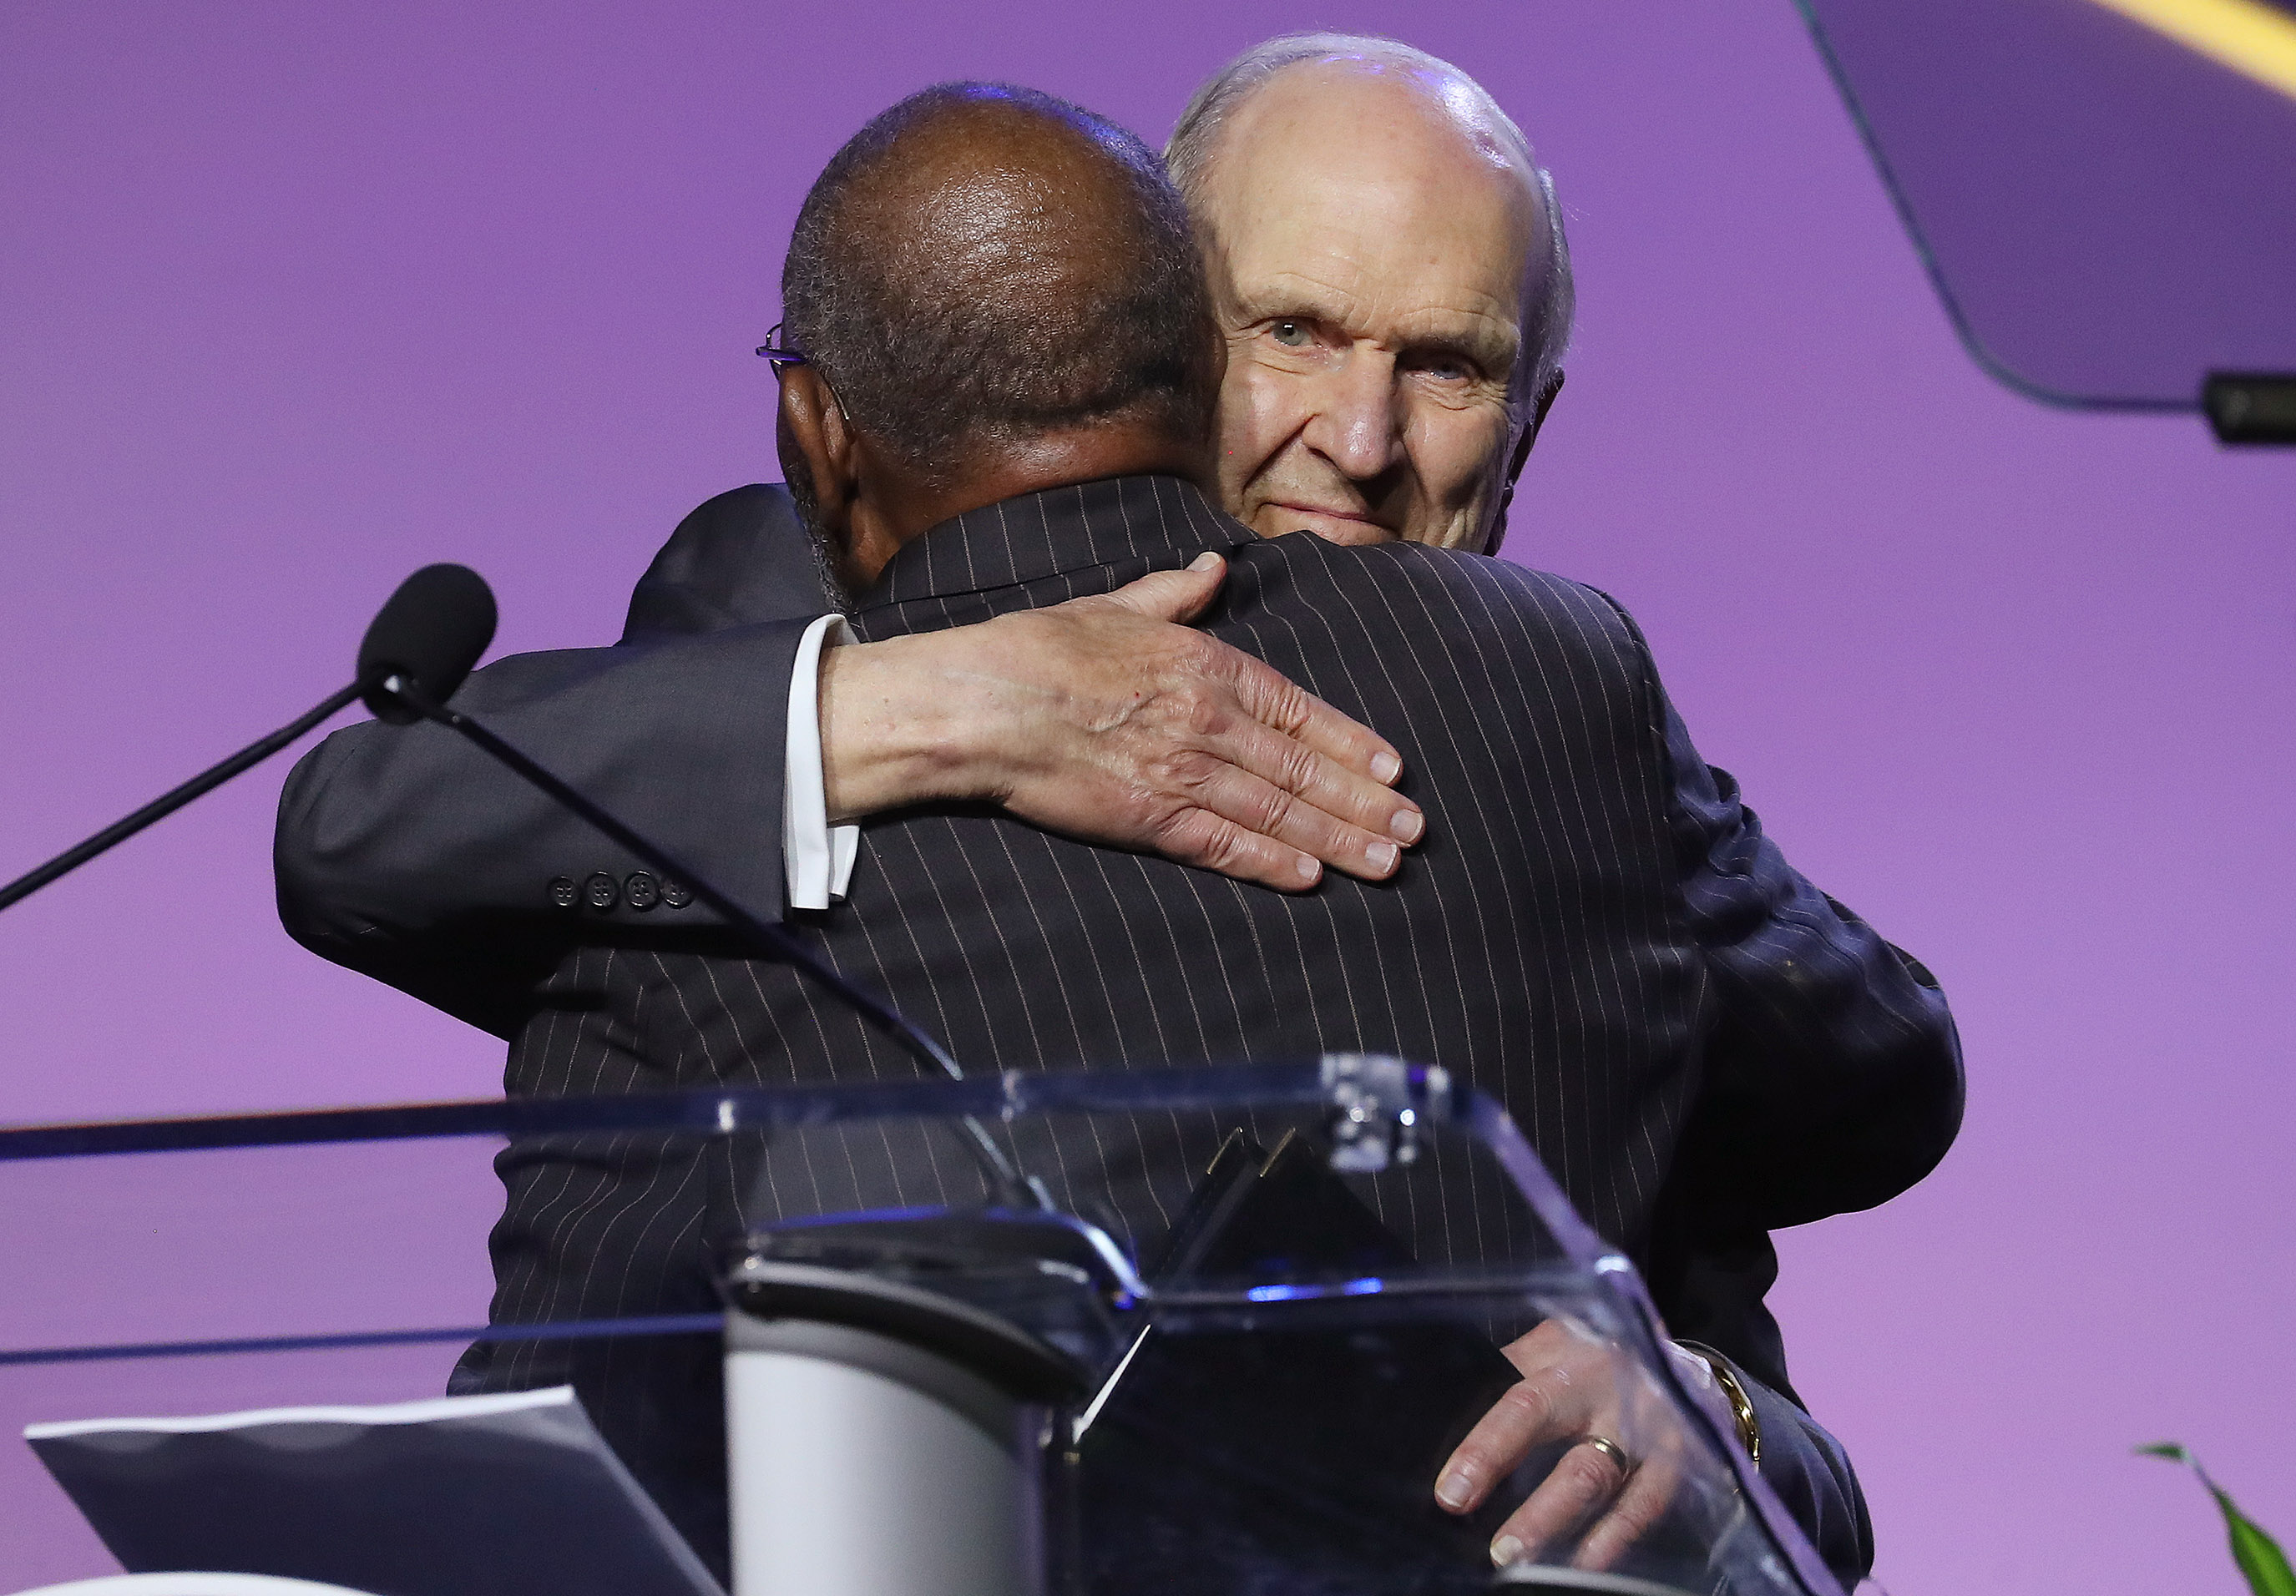 President Russell M. Nelson of The Church of Jesus Christ of Latter-day Saints hugs the Reverend Amos C. Brown after his introduction at the 110th annual national convention for the National Association for the Advancement of Colored People in Detroit on Sunday, July 21, 2019.